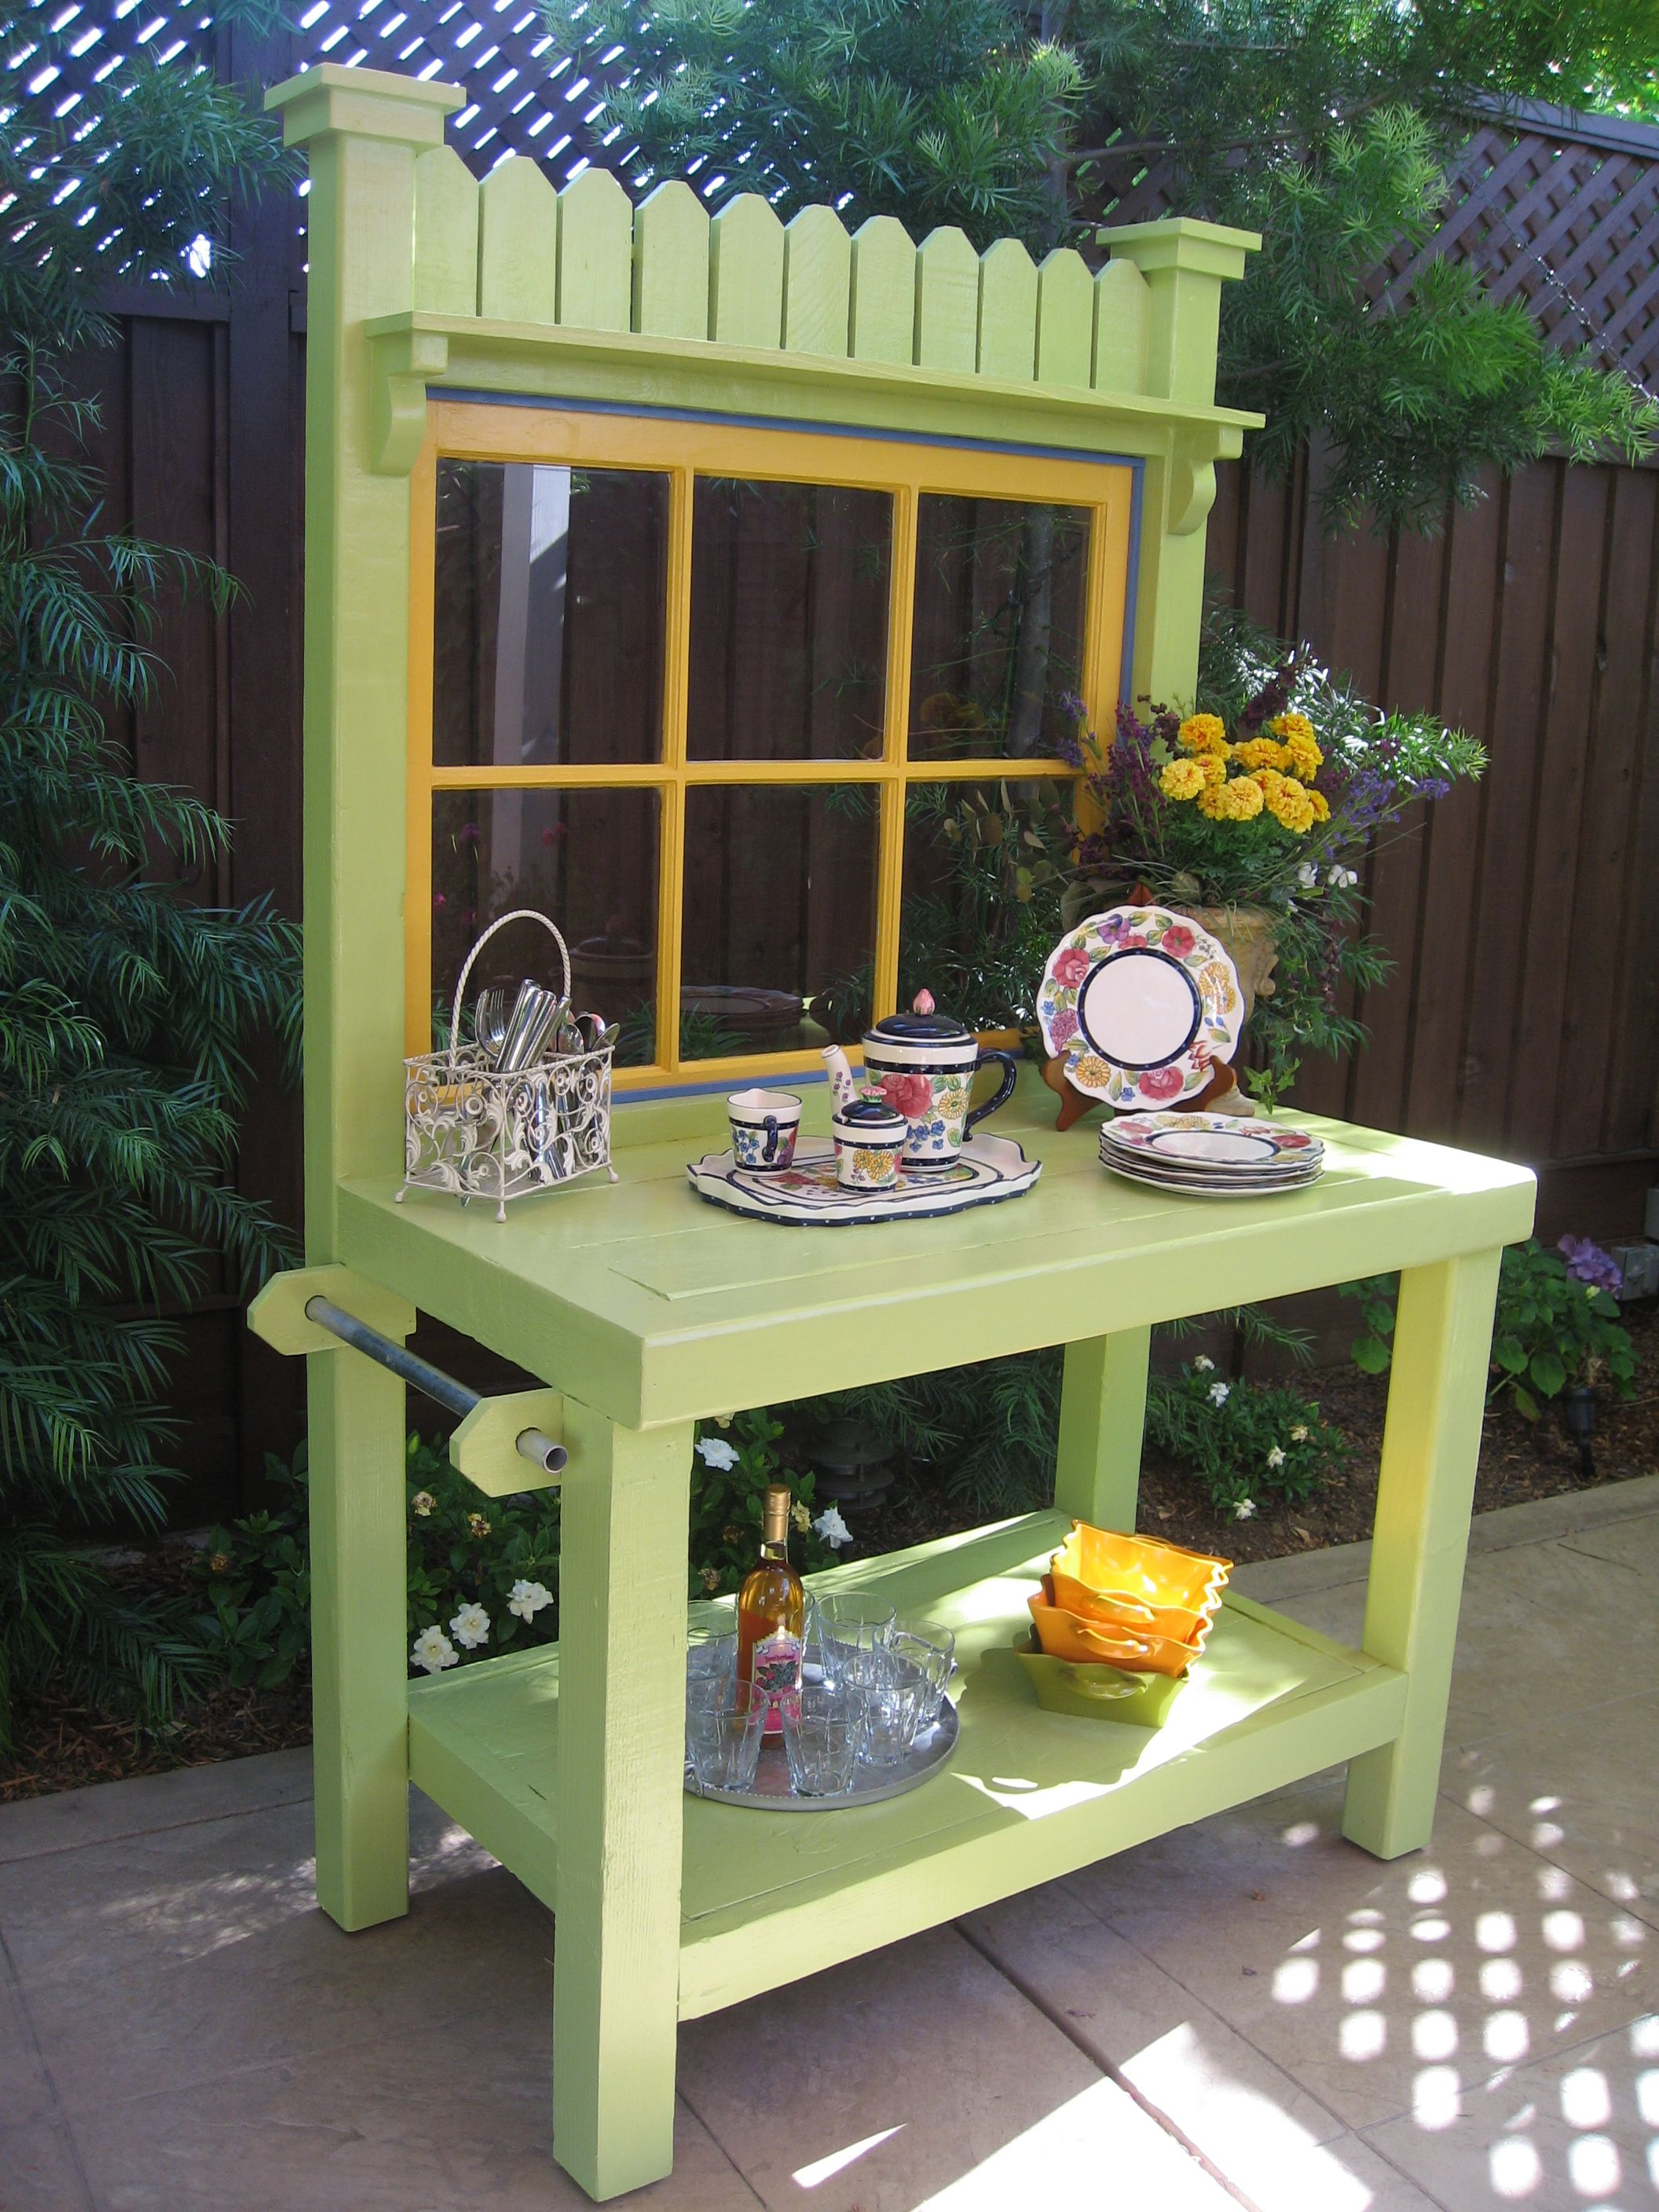 Potting Bench Plans Outdoor Decor Potting Bench Hymns And Verses Gardening